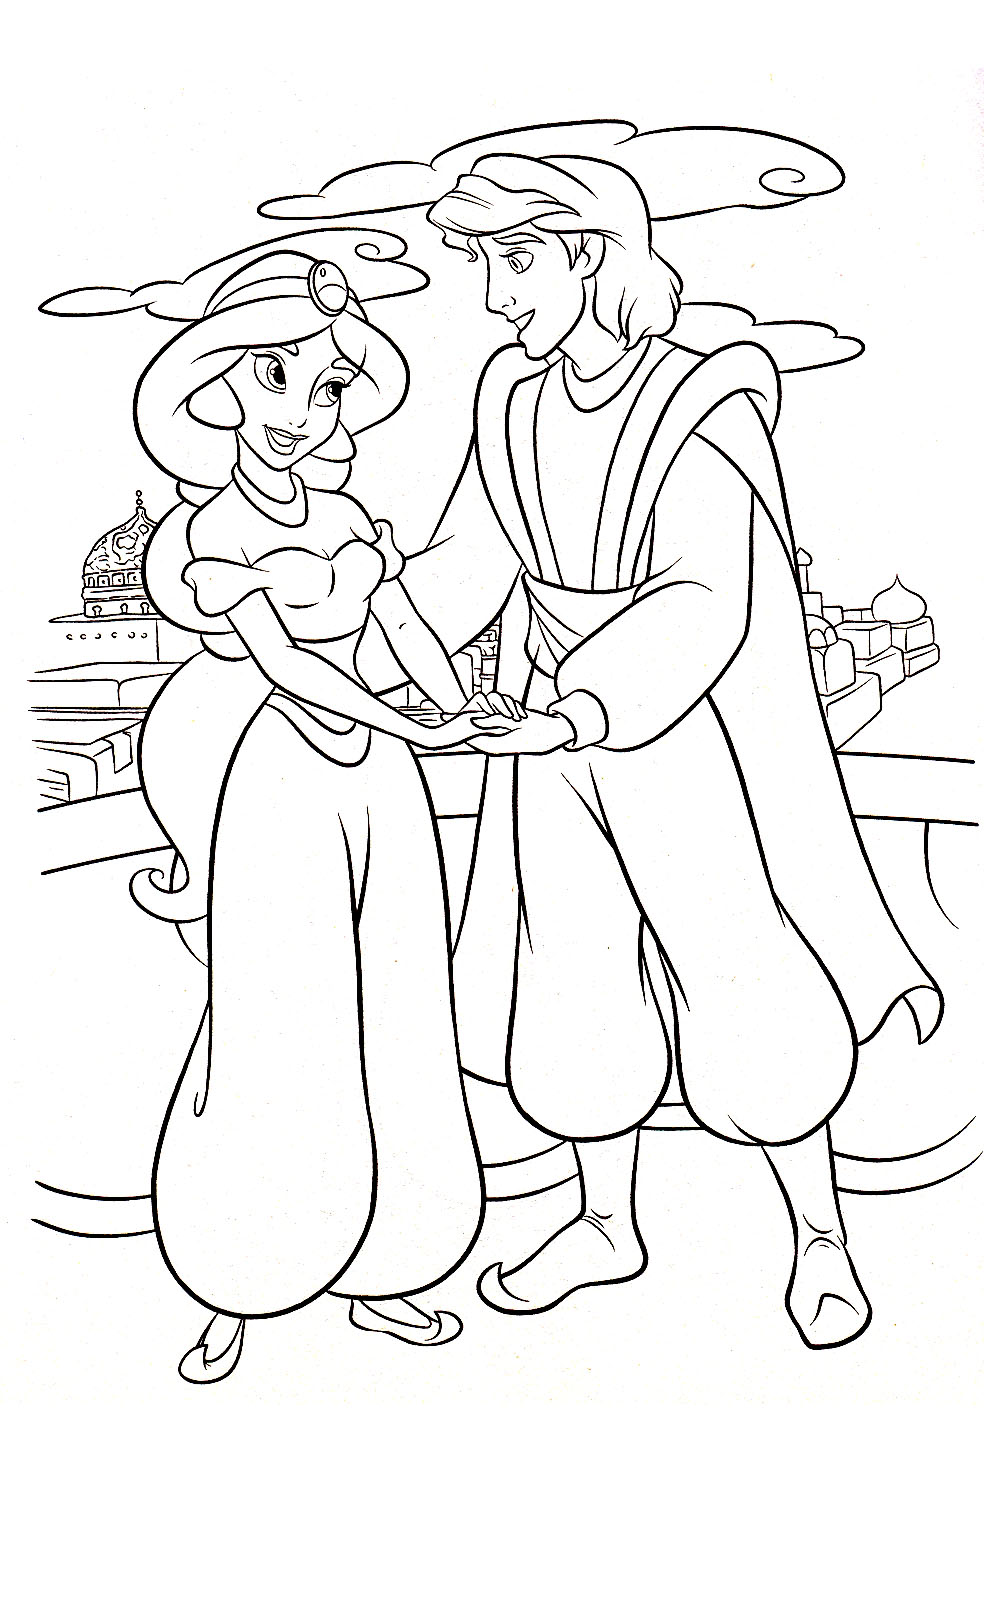 Princess jasmine colouring pages to print - Aladdin Coloring Sheets